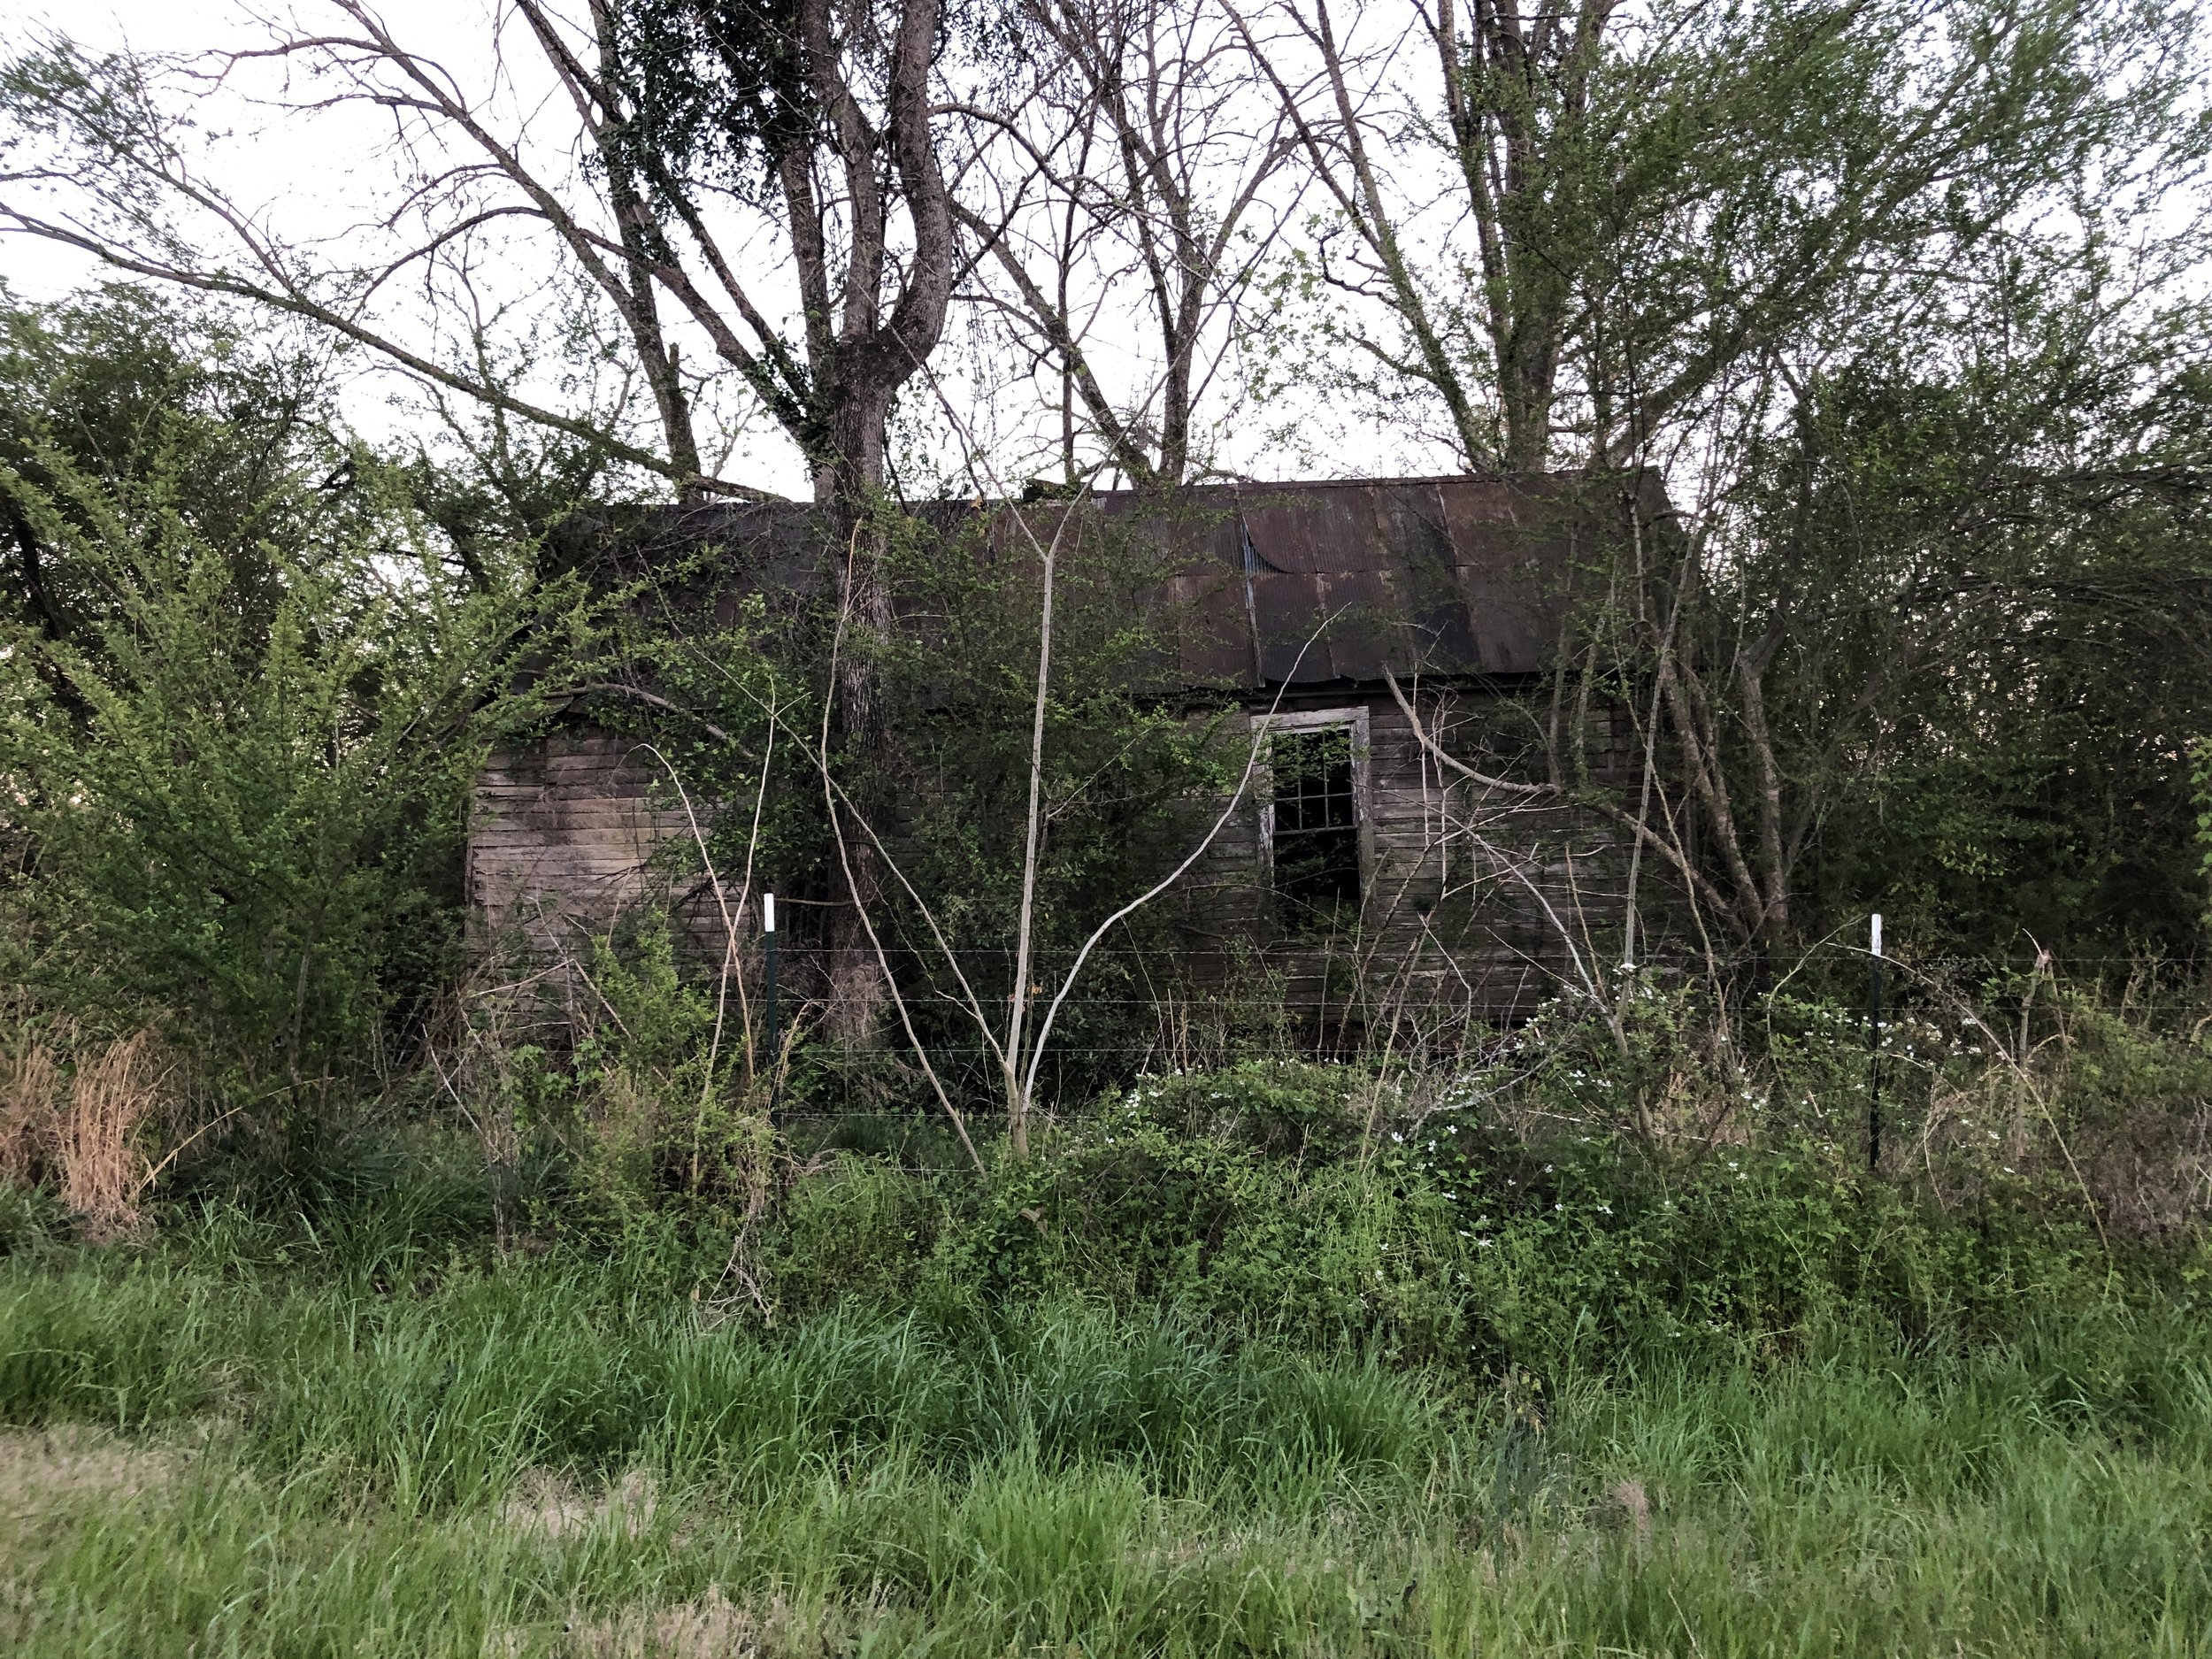 What appears to be an old slave cabin